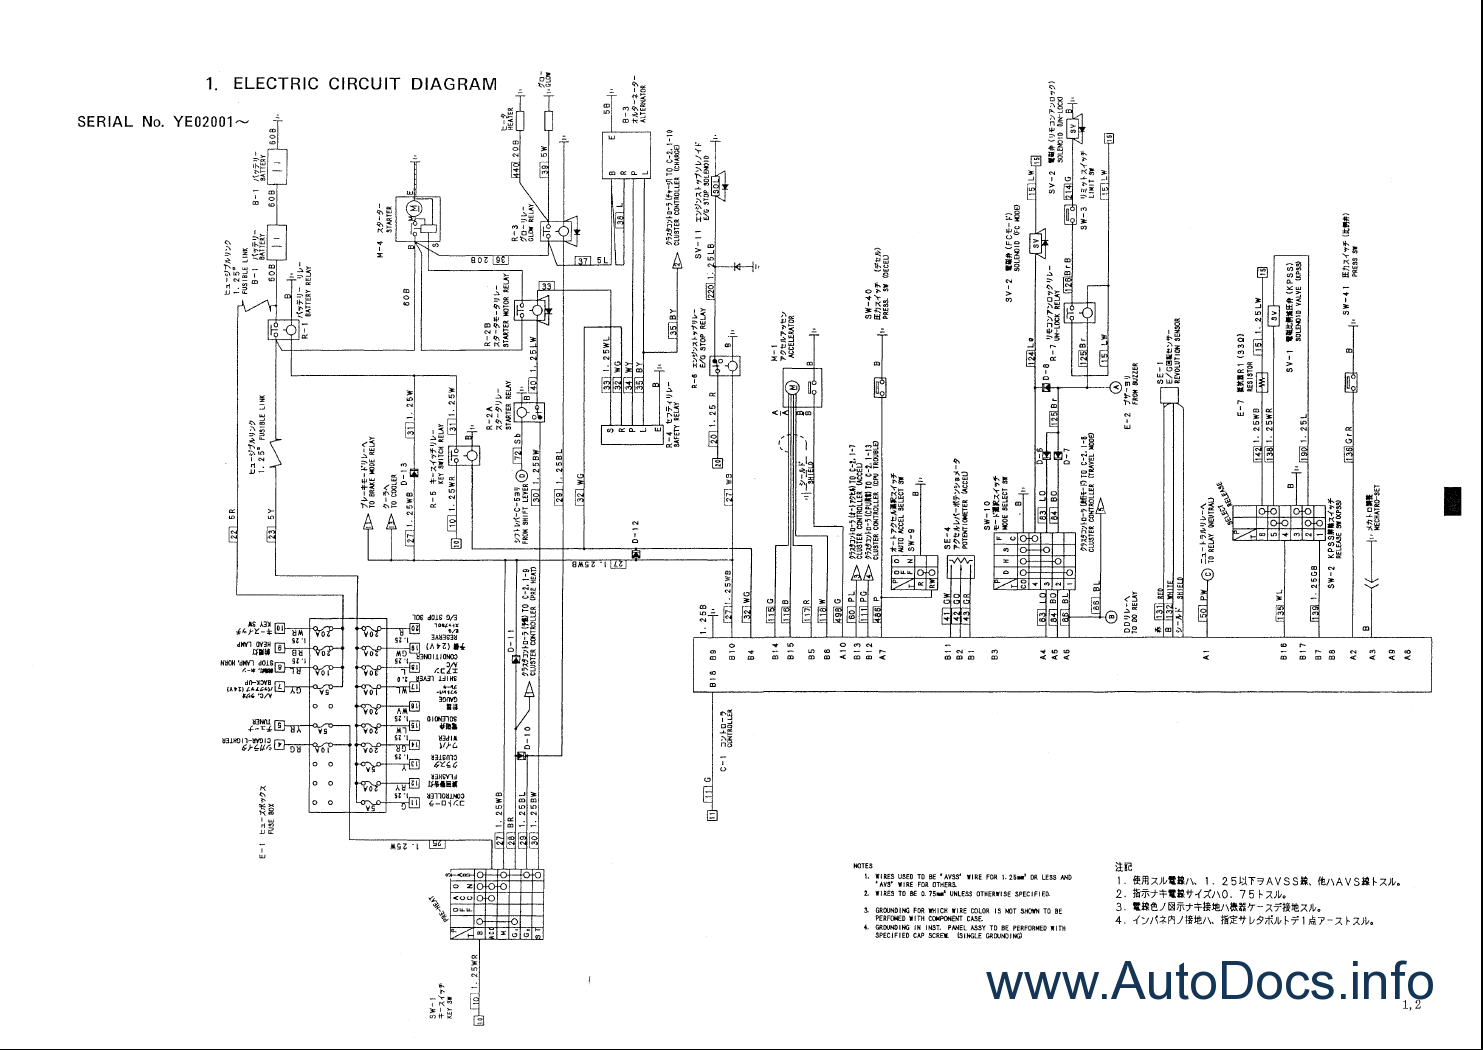 Chevrolet 3 4 Engine Diagram, Chevrolet, Free Engine Image